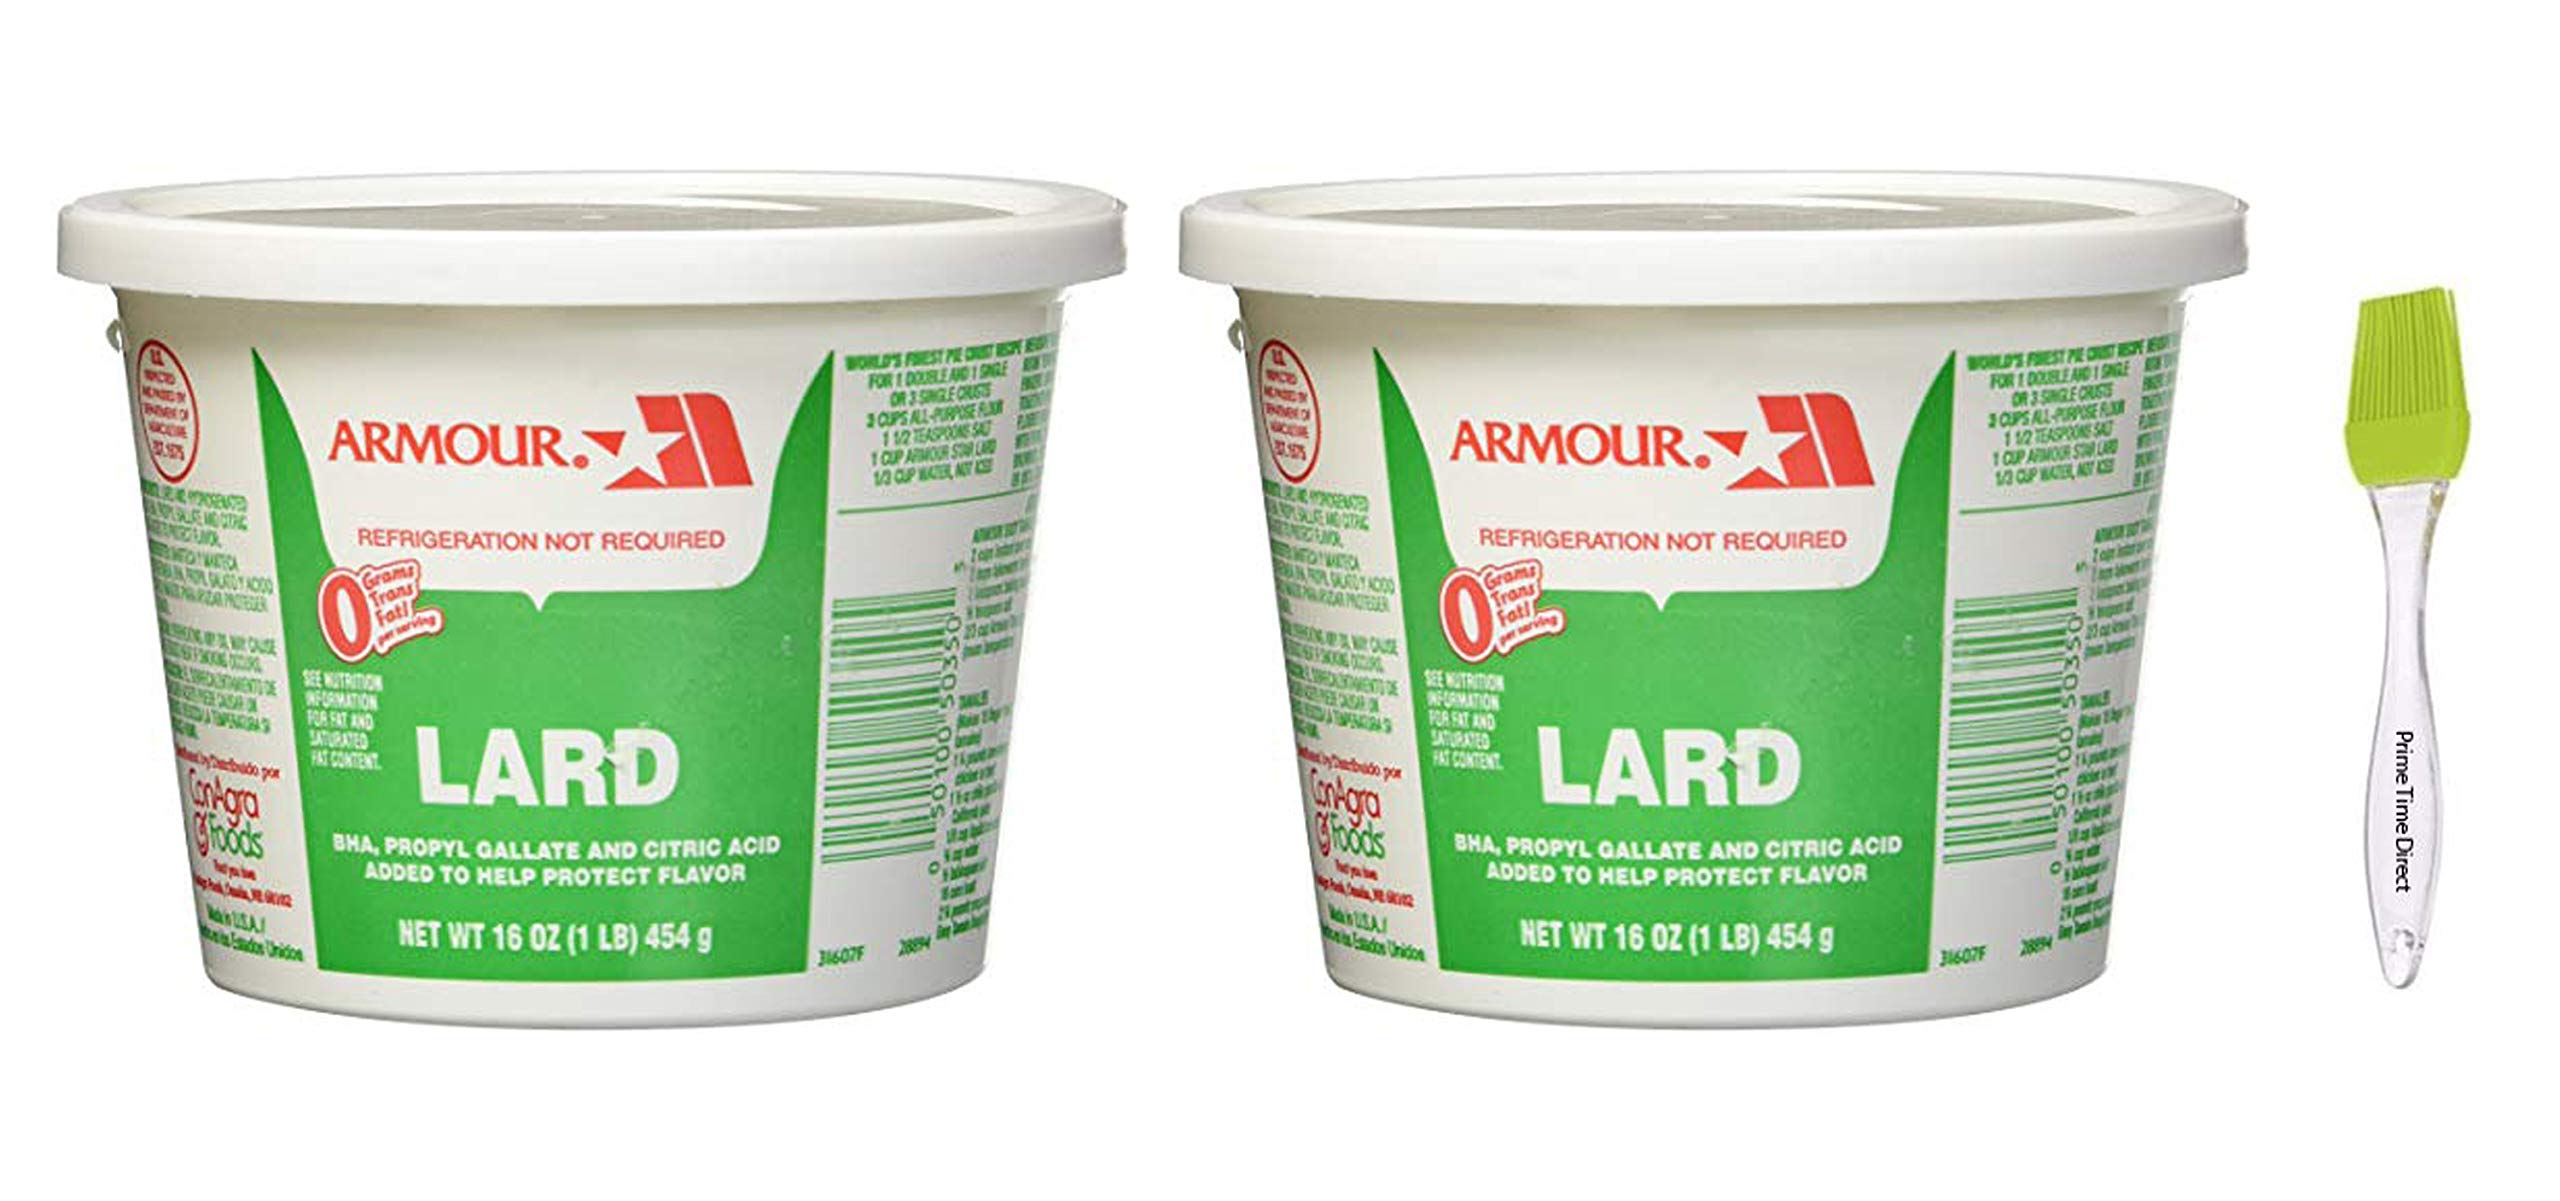 Armour Lard Star Tubs 16 oz (Pack of 2) Bundled with PrimeTime Direct Silicone Basting Brush in a PTD Sealed Bag